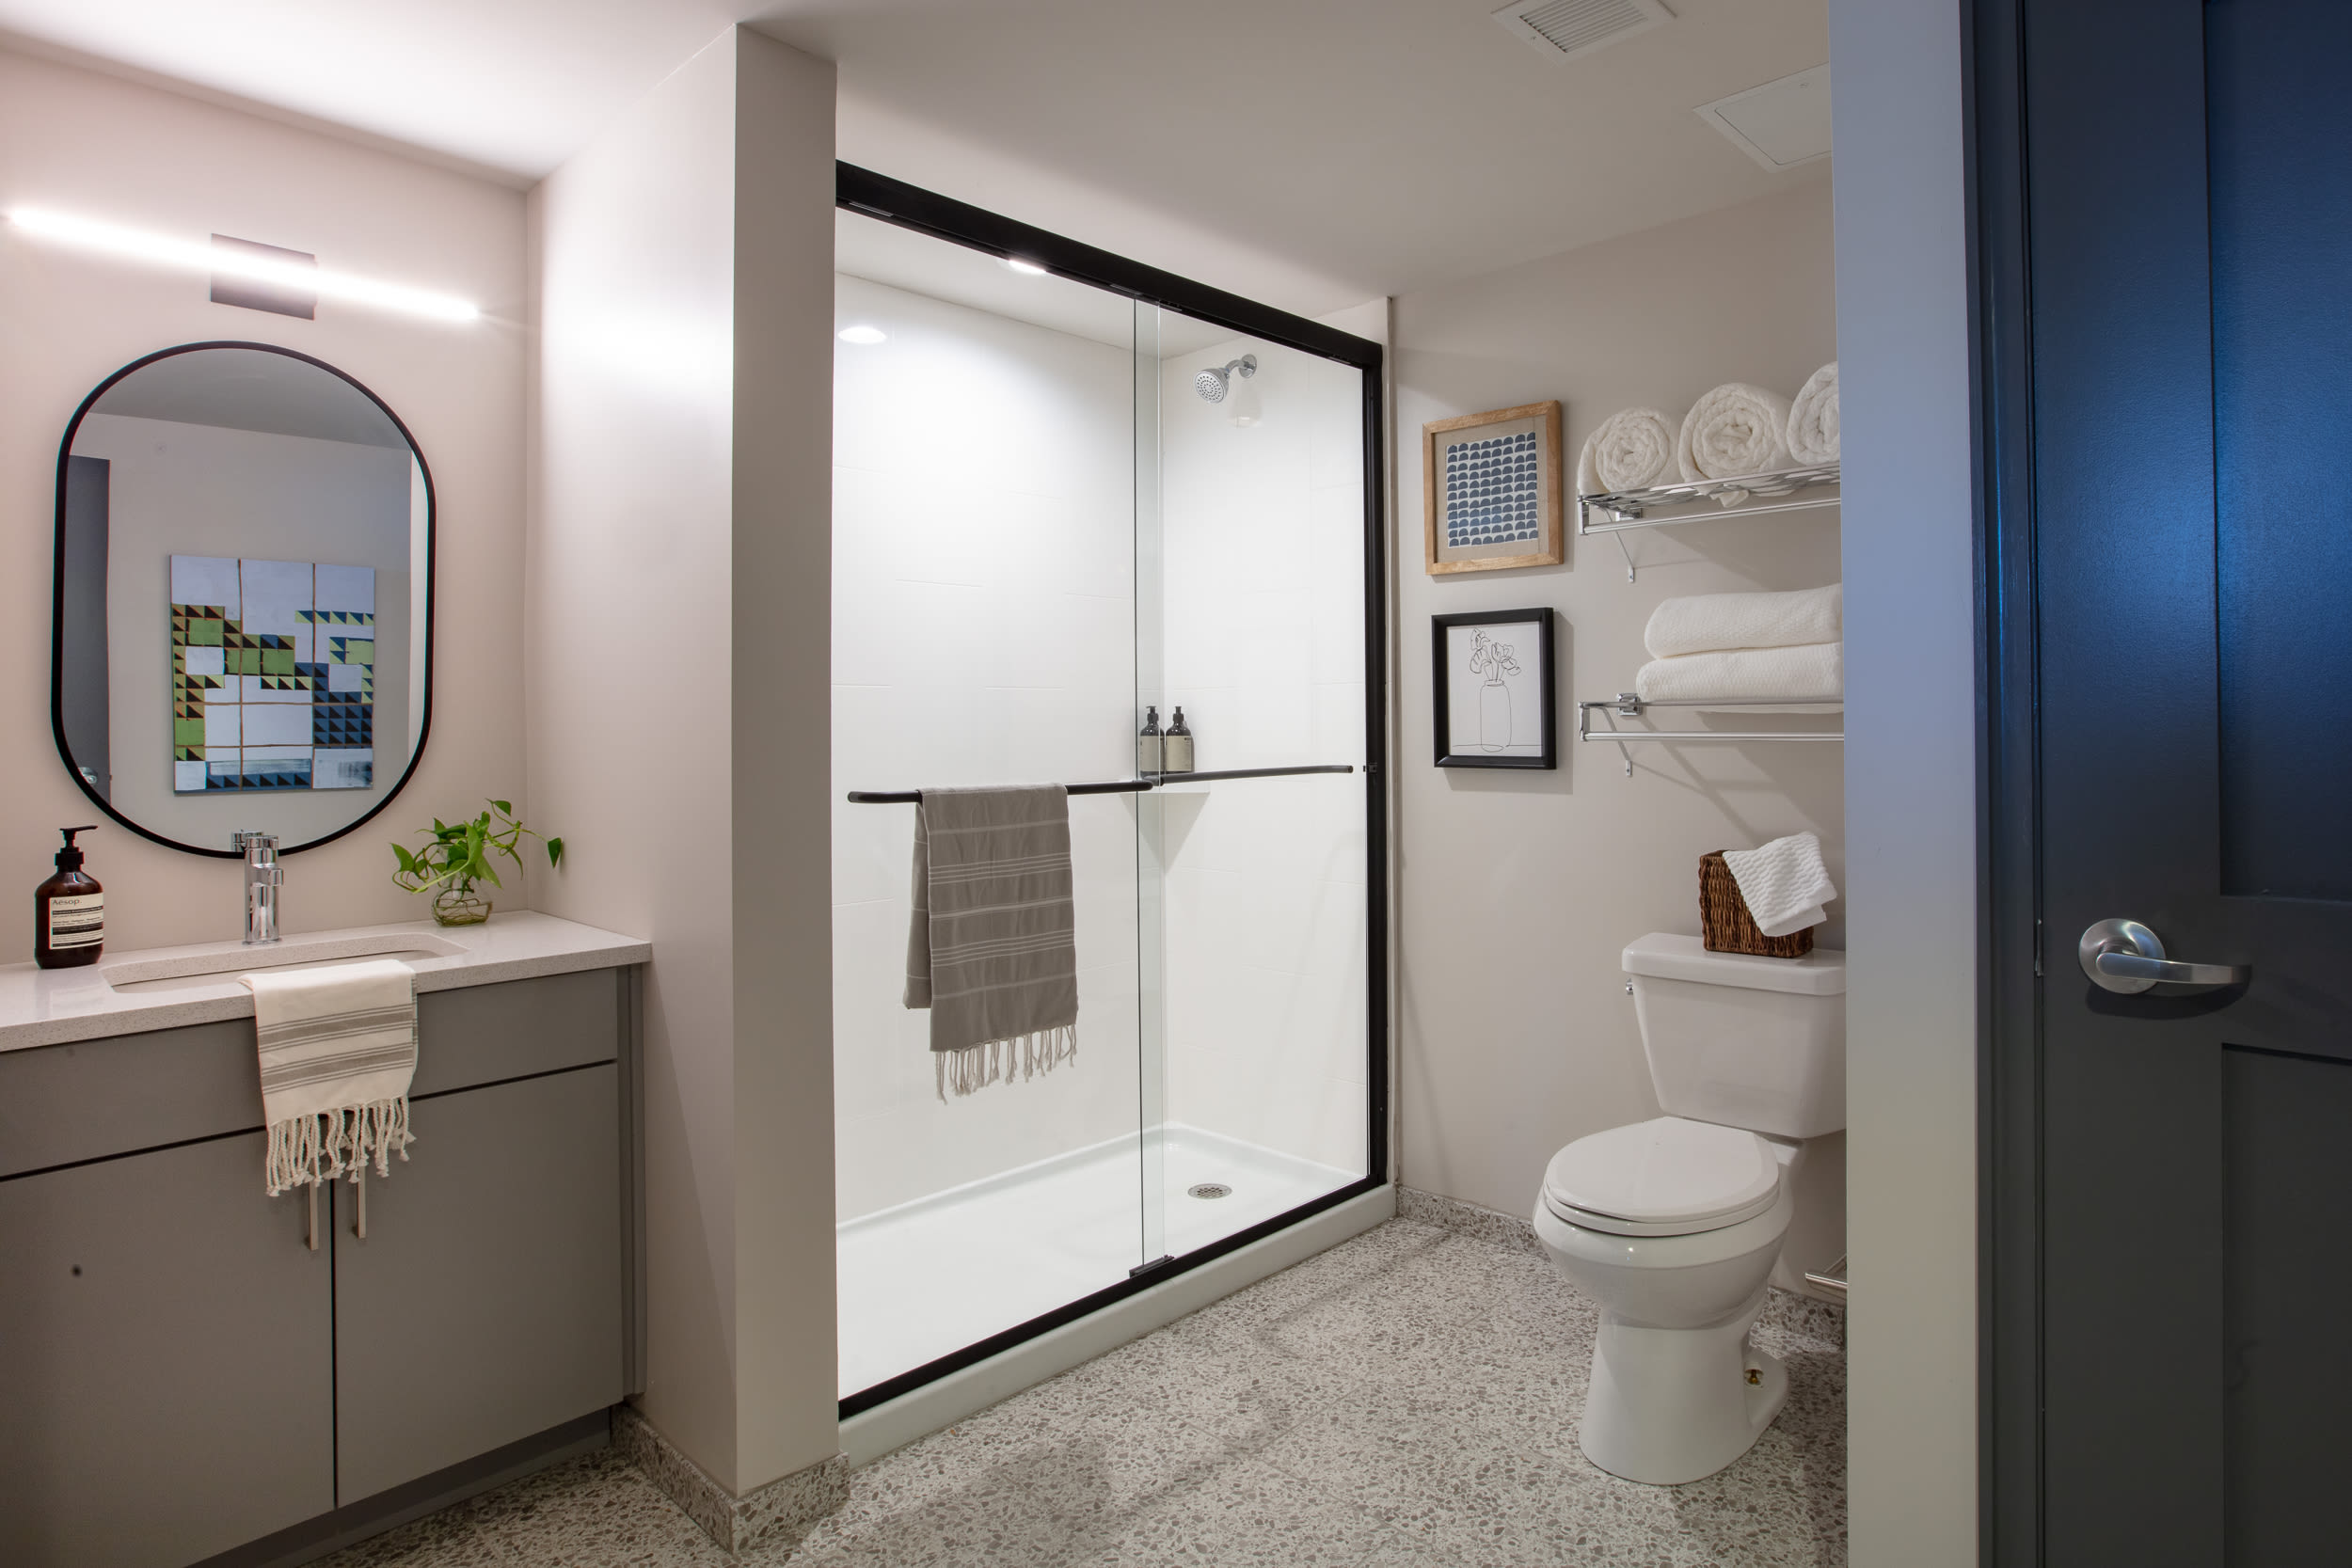 Glass shower doors and tiled flooring in a model home's bathroom at Thirteen15 in New Orleans, Louisiana